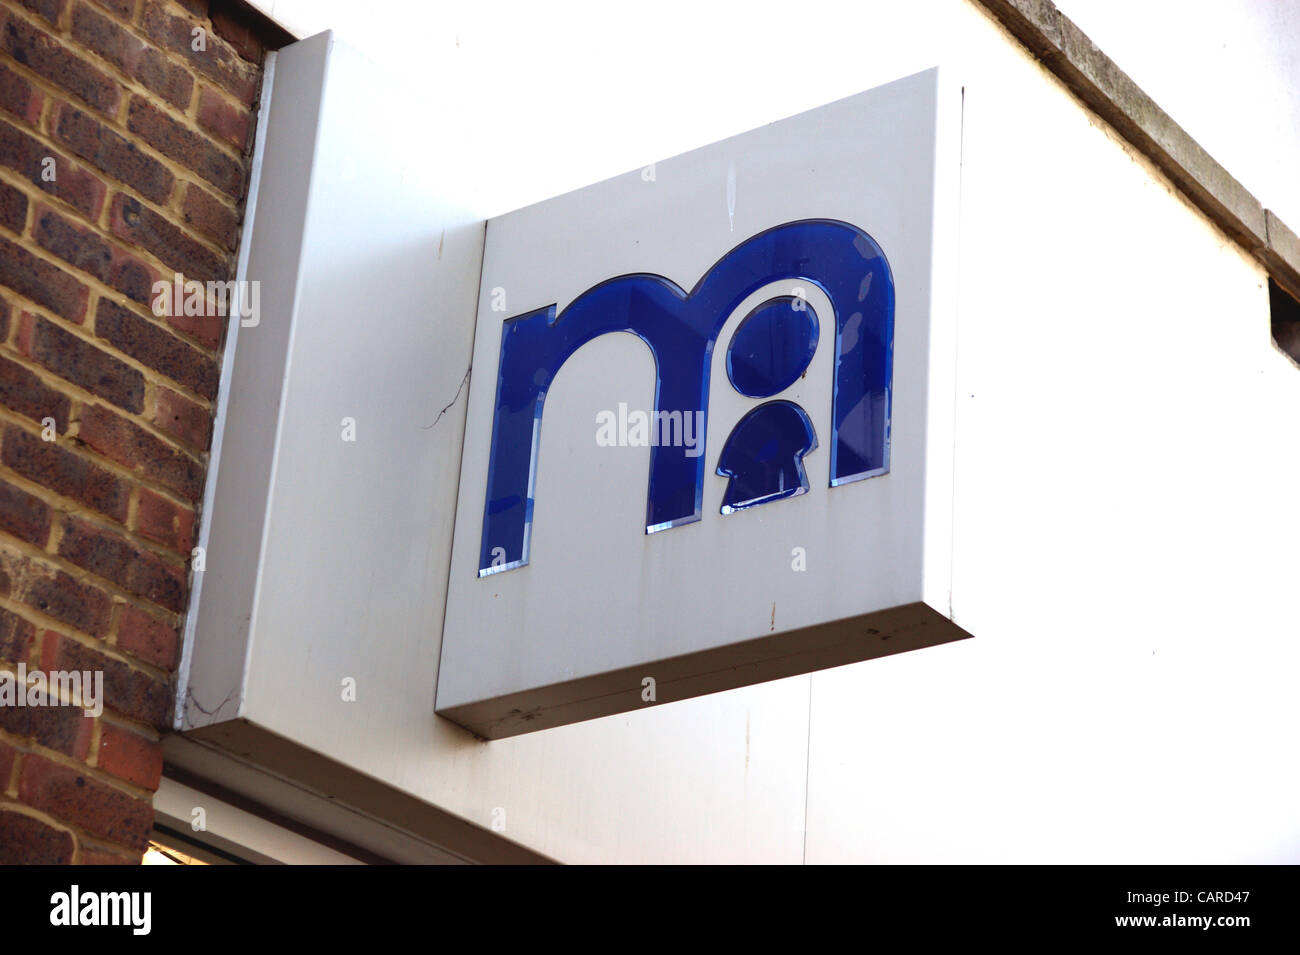 Mothercare retailer shop in the high street Worthing West Sussex - Stock Image